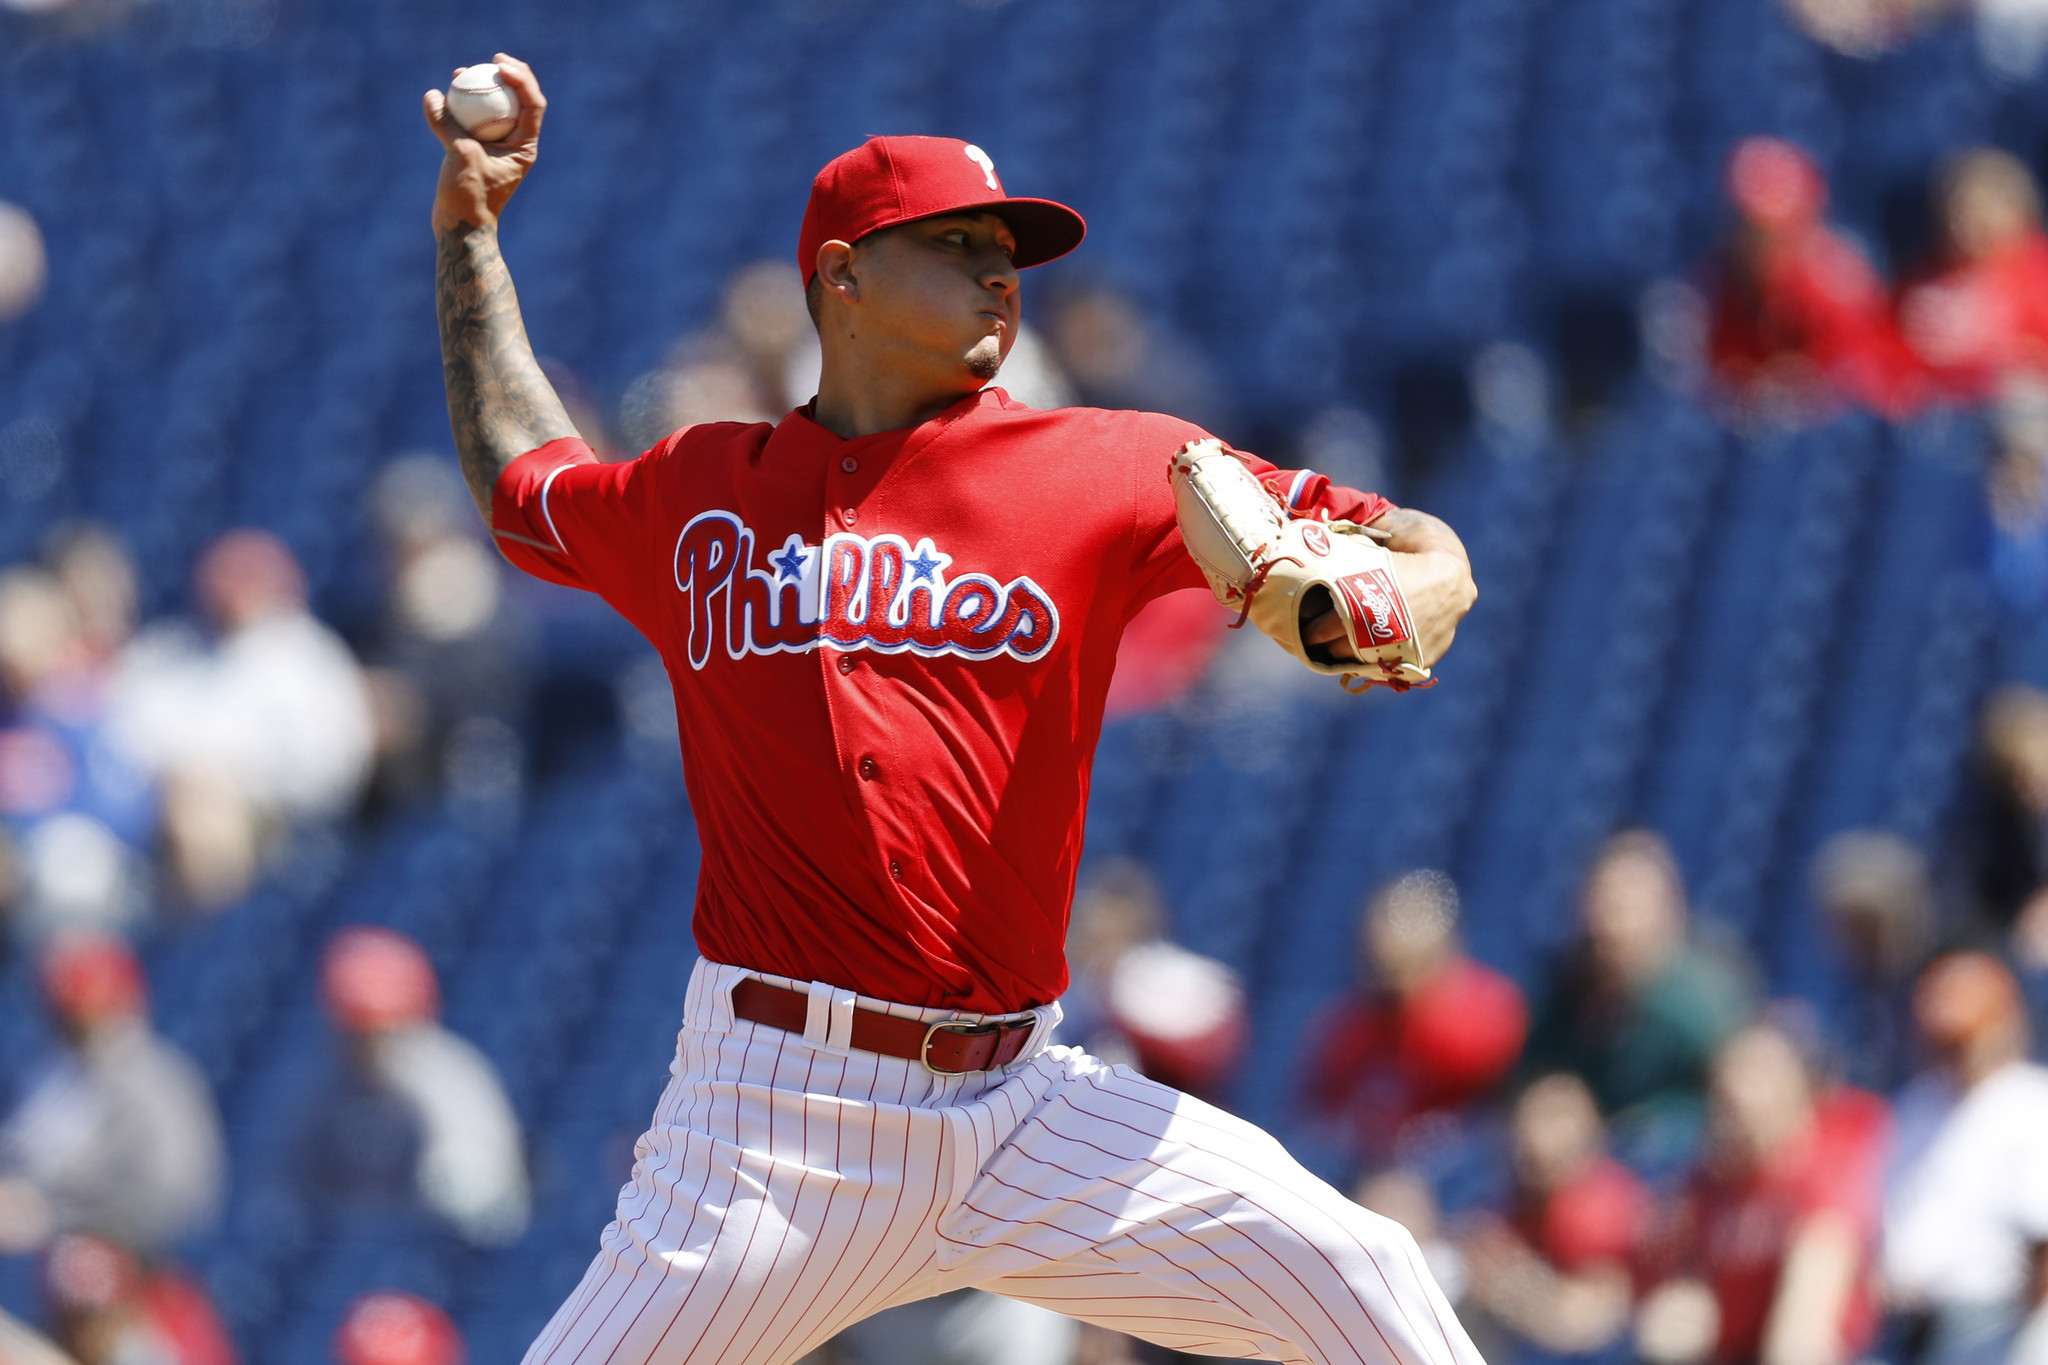 Mc-phillies-padres-game-0414-20160414